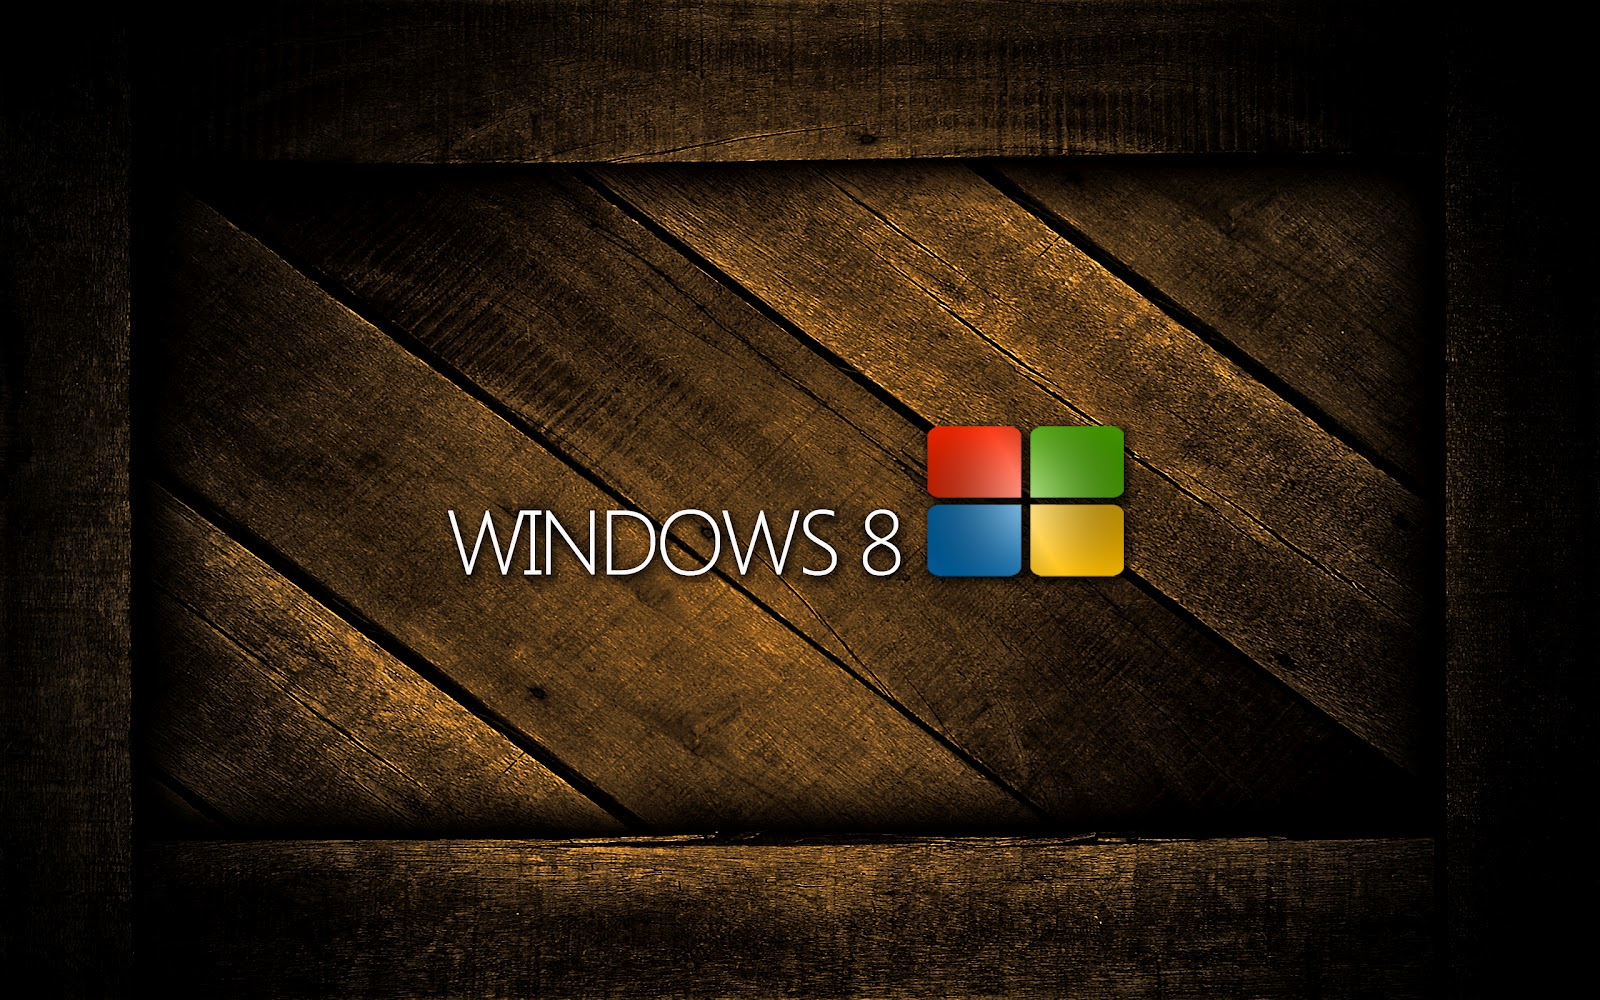 [Imagen: windows-8-wallpaper-hd-27.jpg]